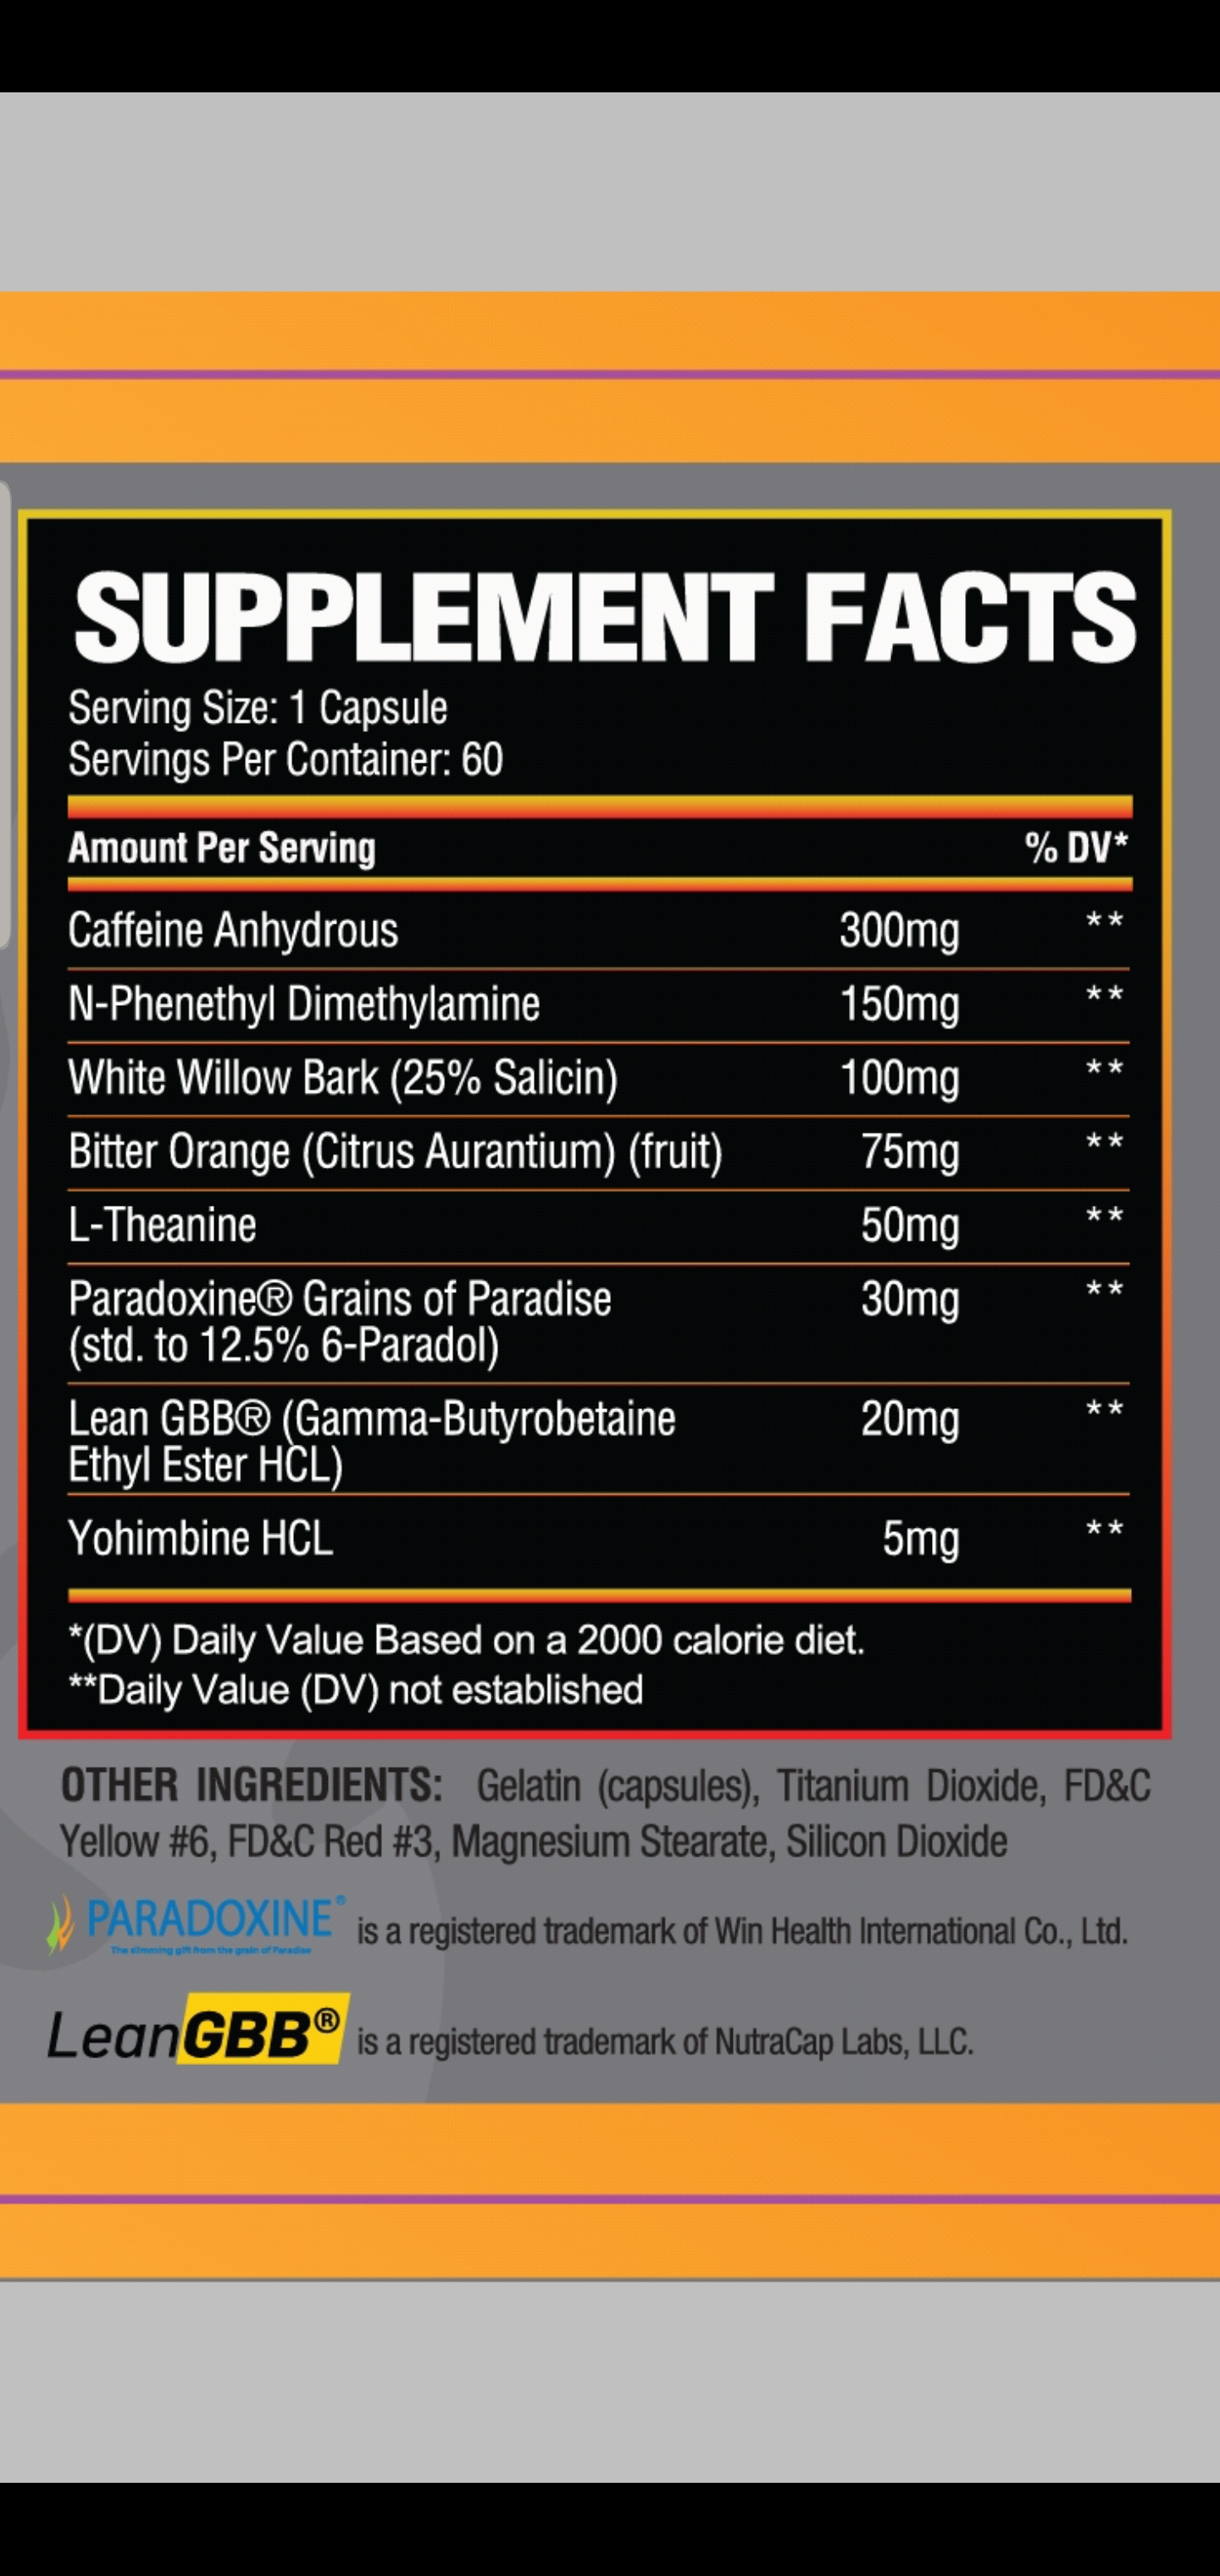 Full Label Transparency/Clinically Proven Ingredients